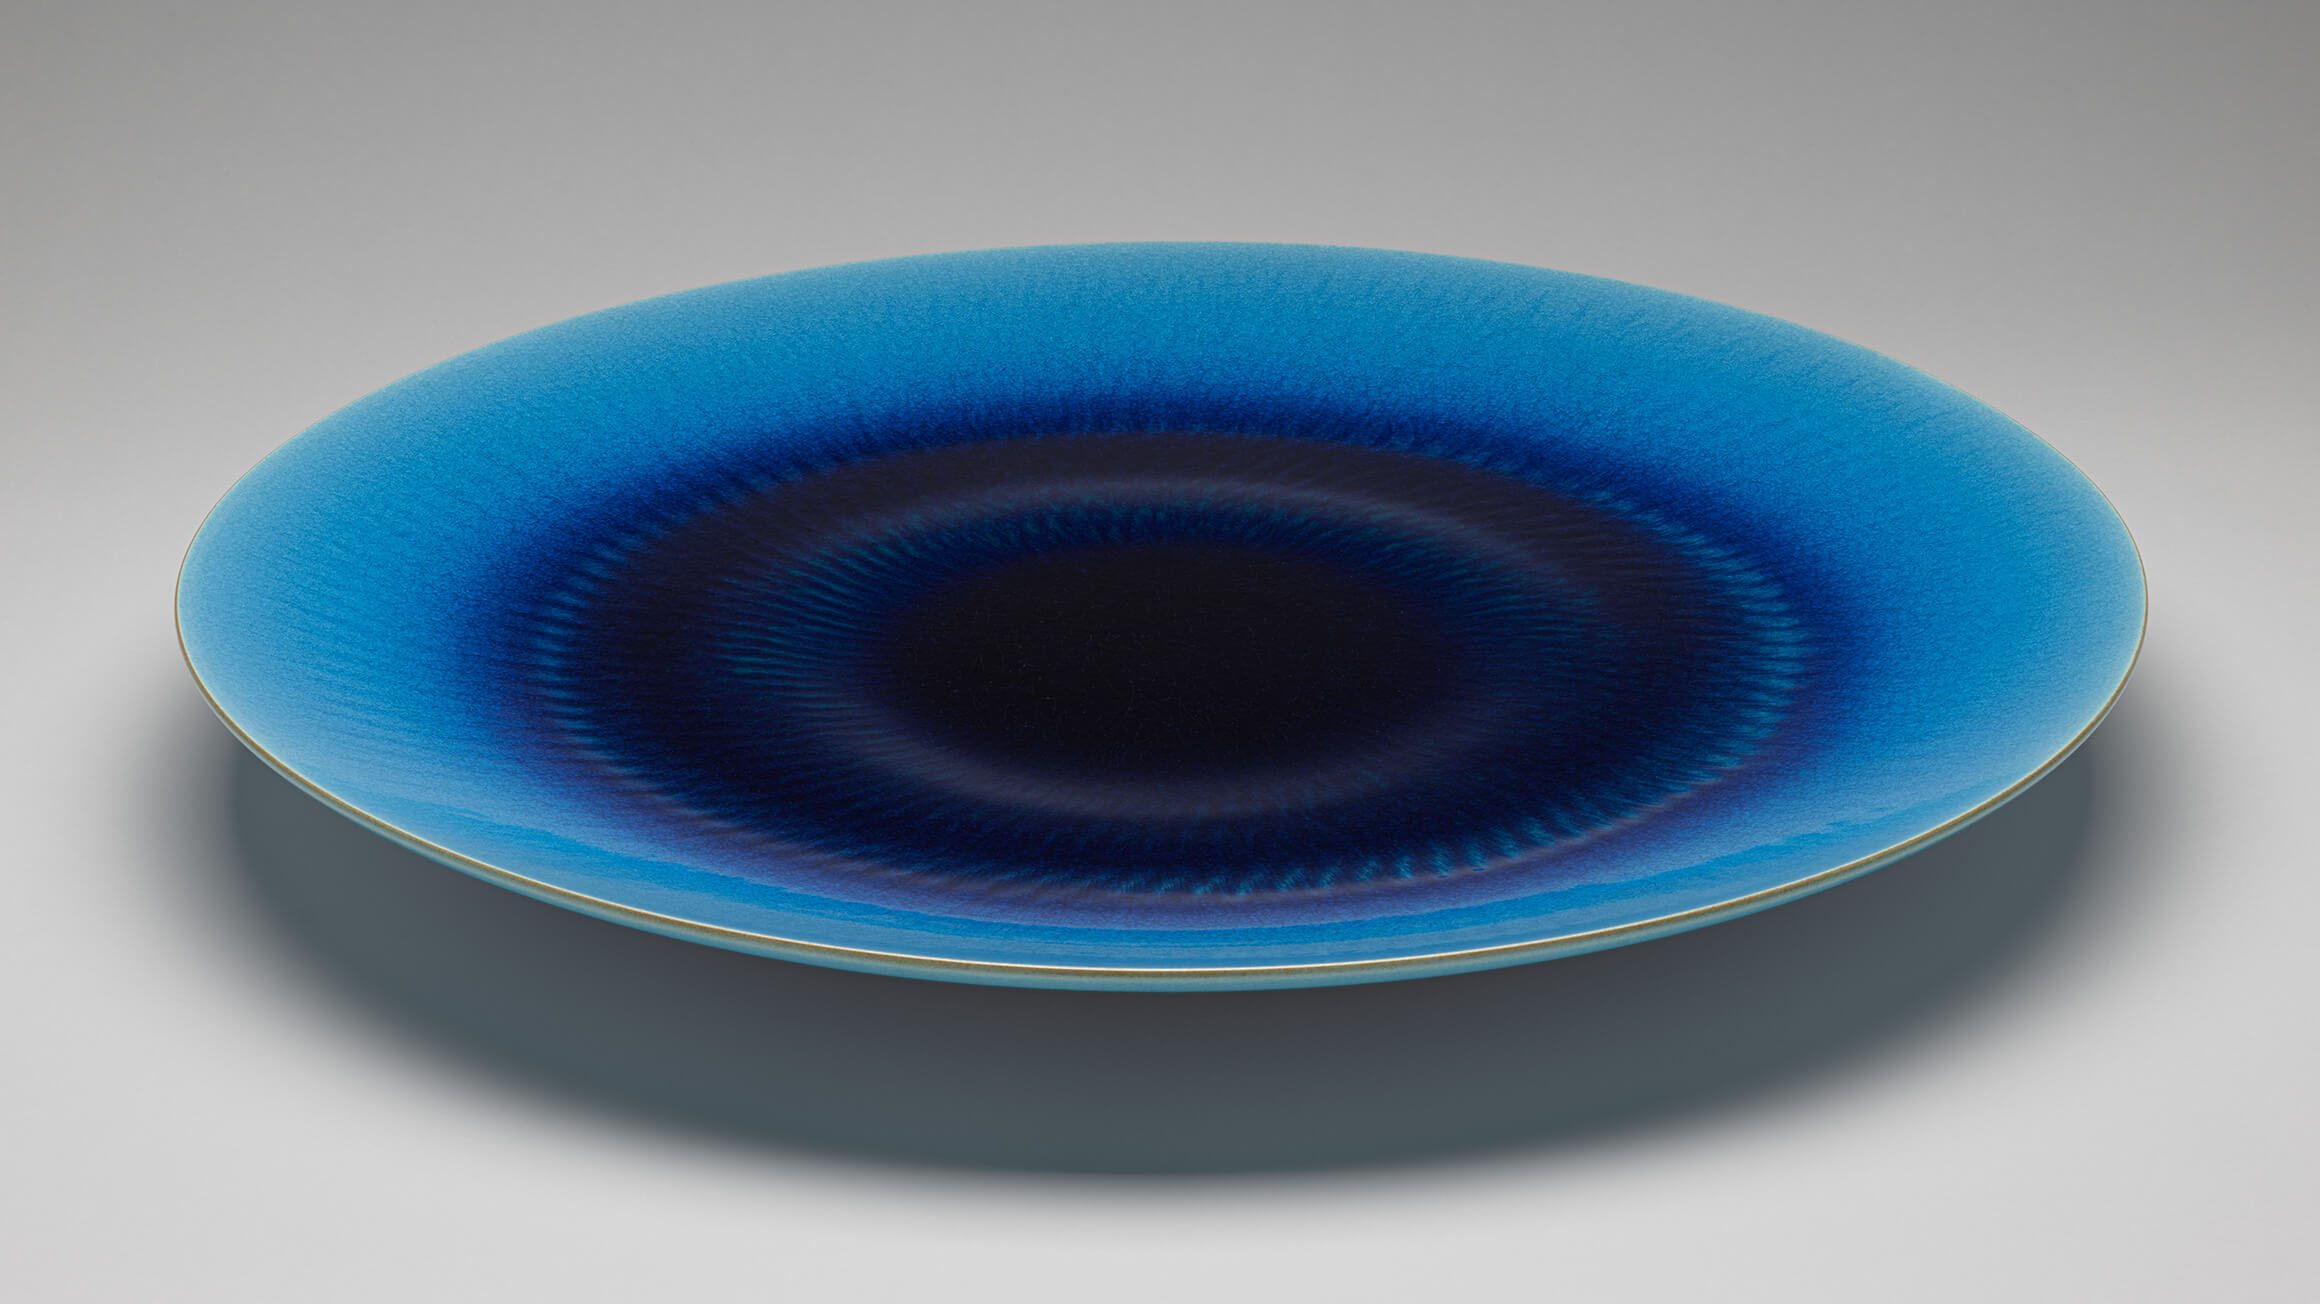 Vessel with Blue Glaze, 2013, by Kimura Yoshiro (Japanese, born 1946), 2018-37-1